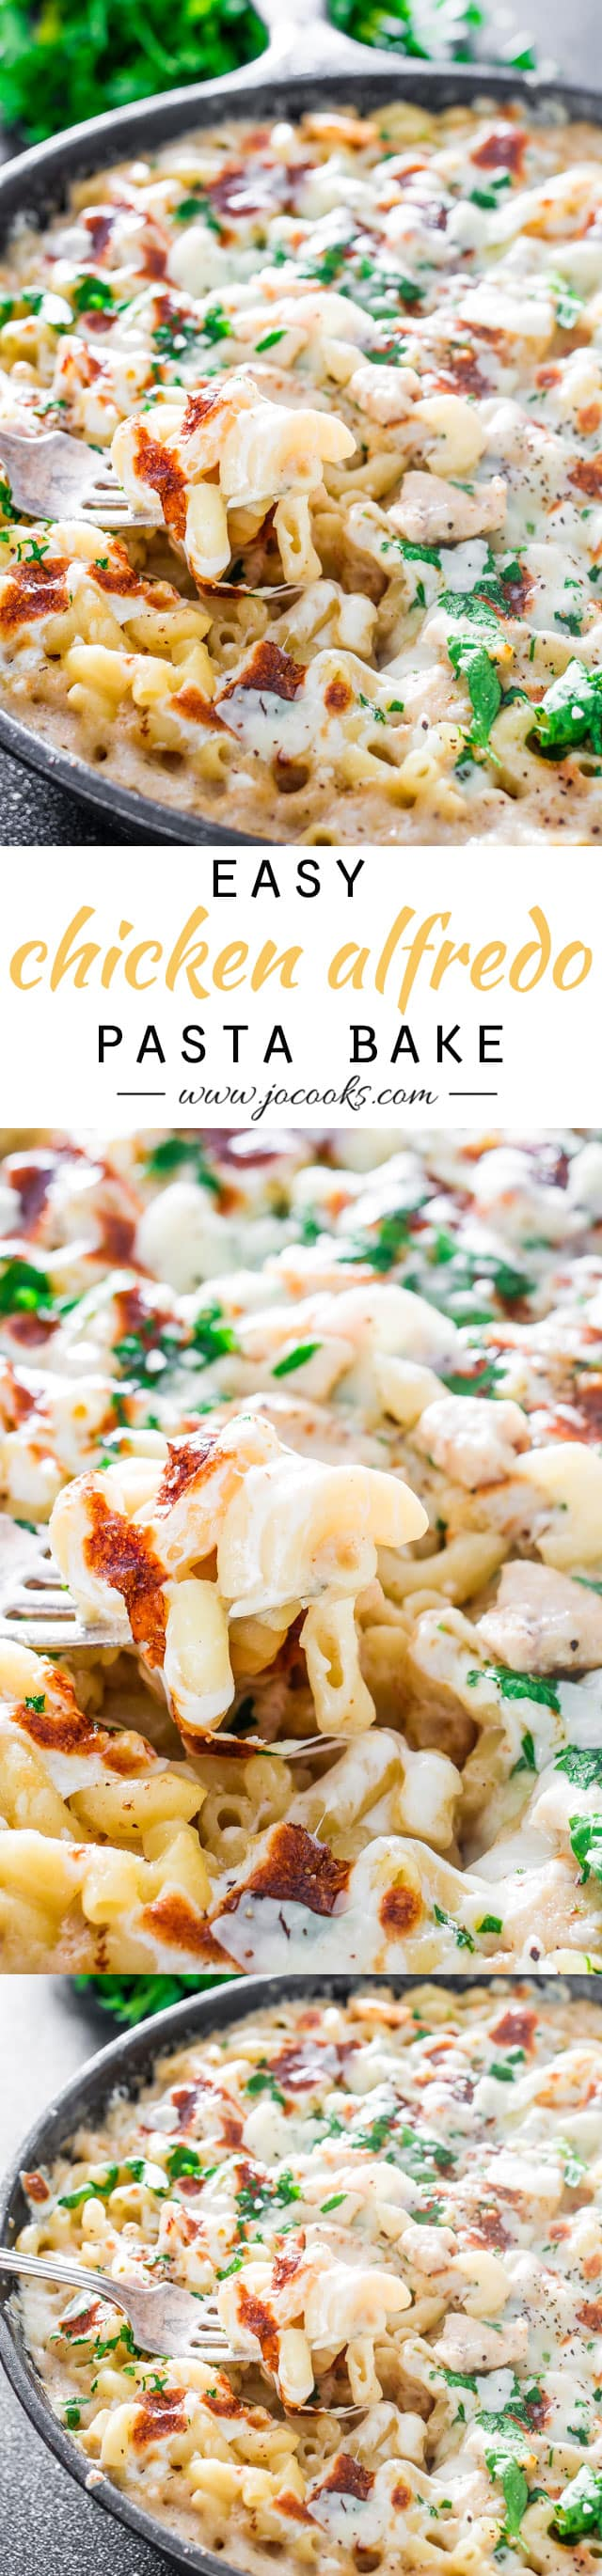 Easy Chicken Alfredo Pasta Bake - A simple, no-fuss dinner that you can easily make right at home with very few ingredients.